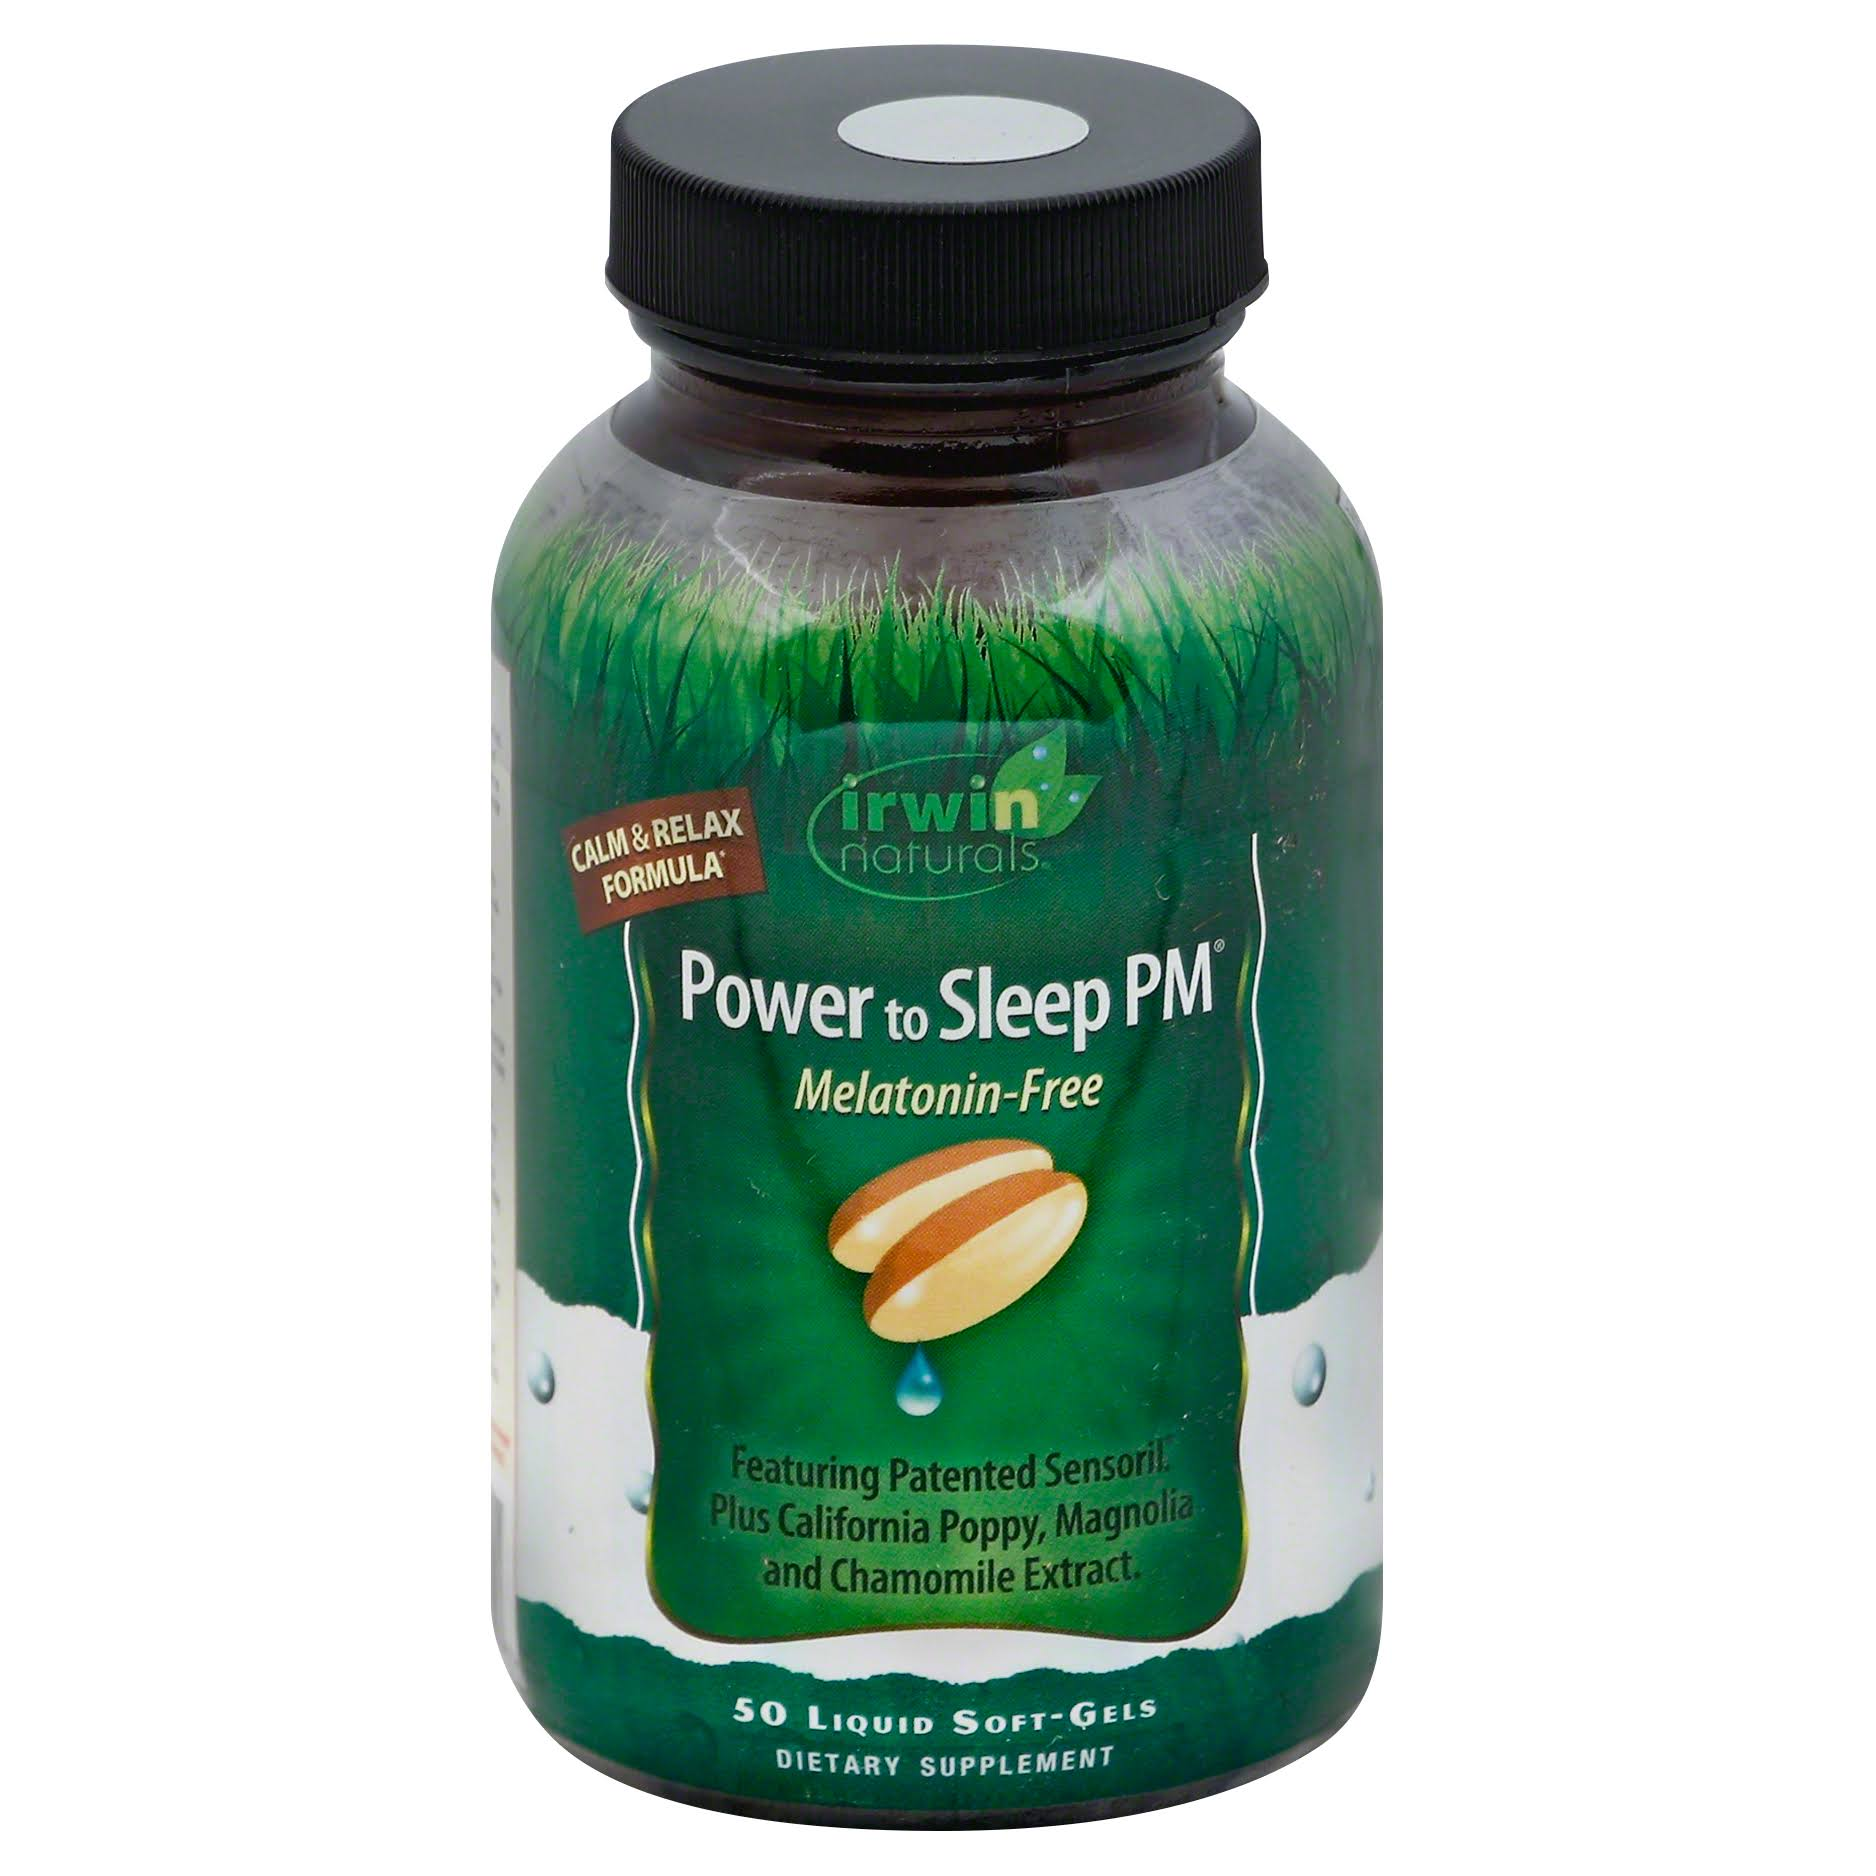 Irwin Naturals Power To Sleep Pm Melatonin-Free - 50 Liquid Soft-Gels